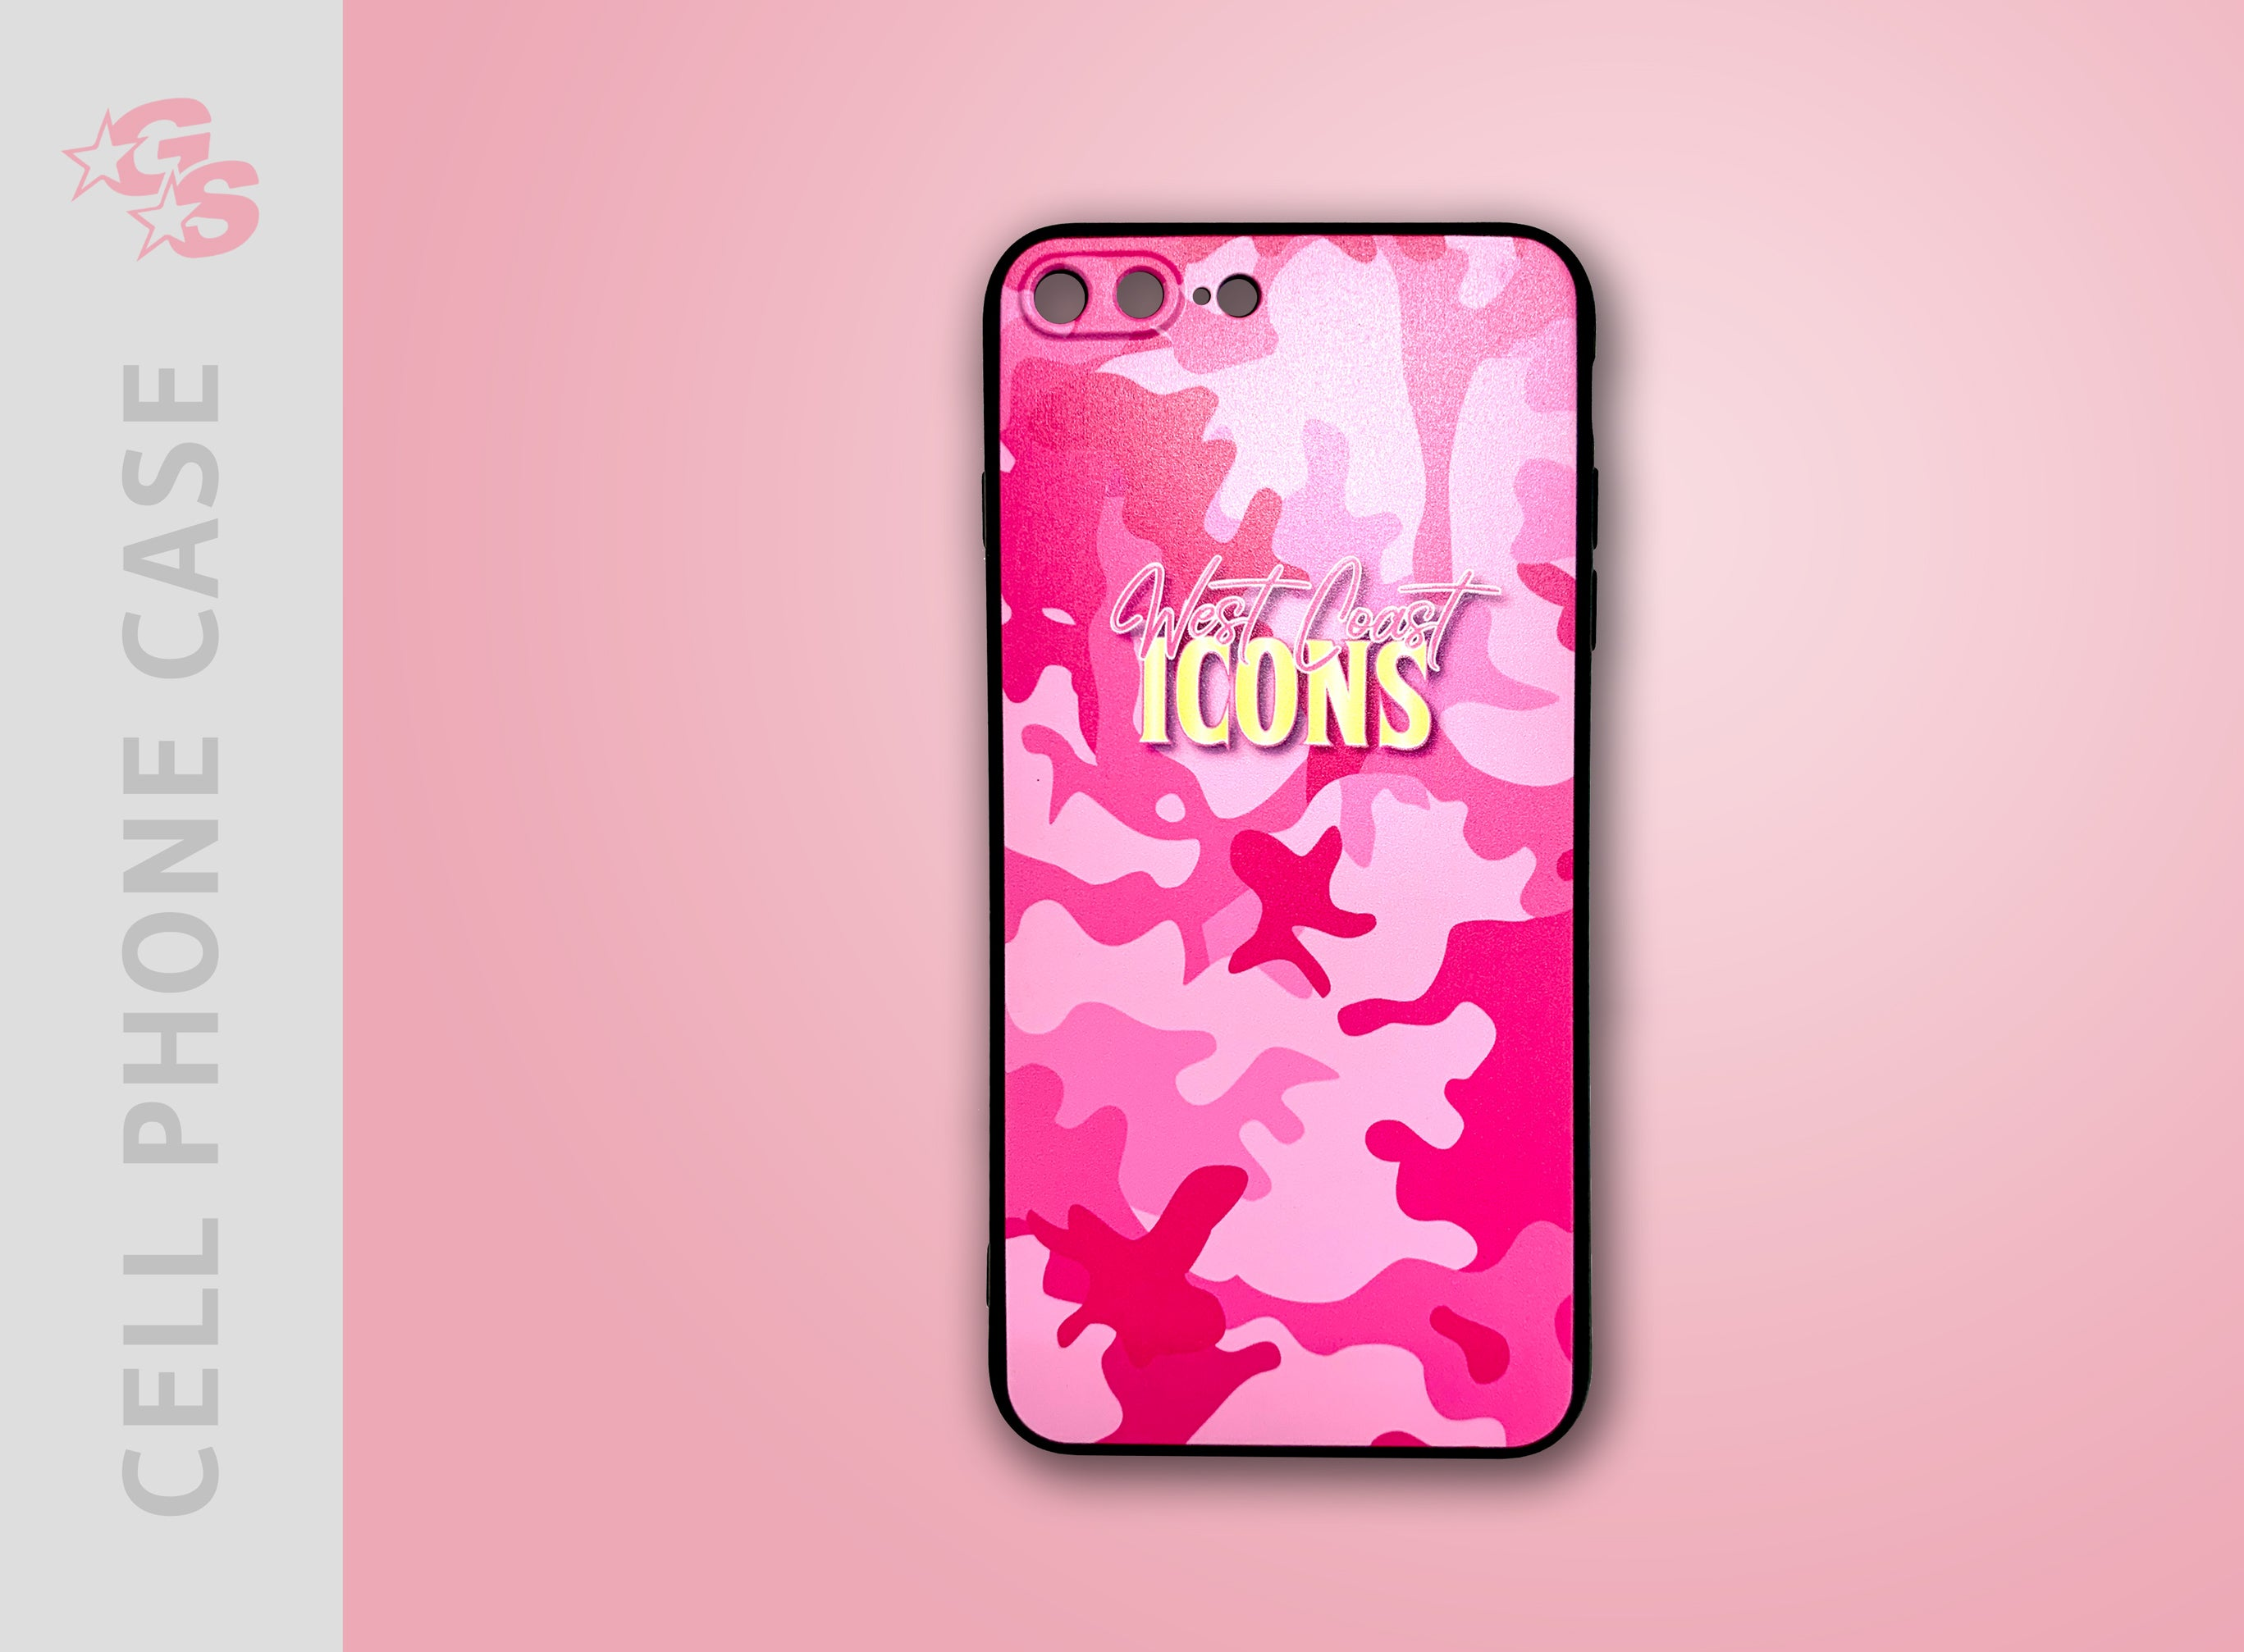 Dyesub cell phone case with logo